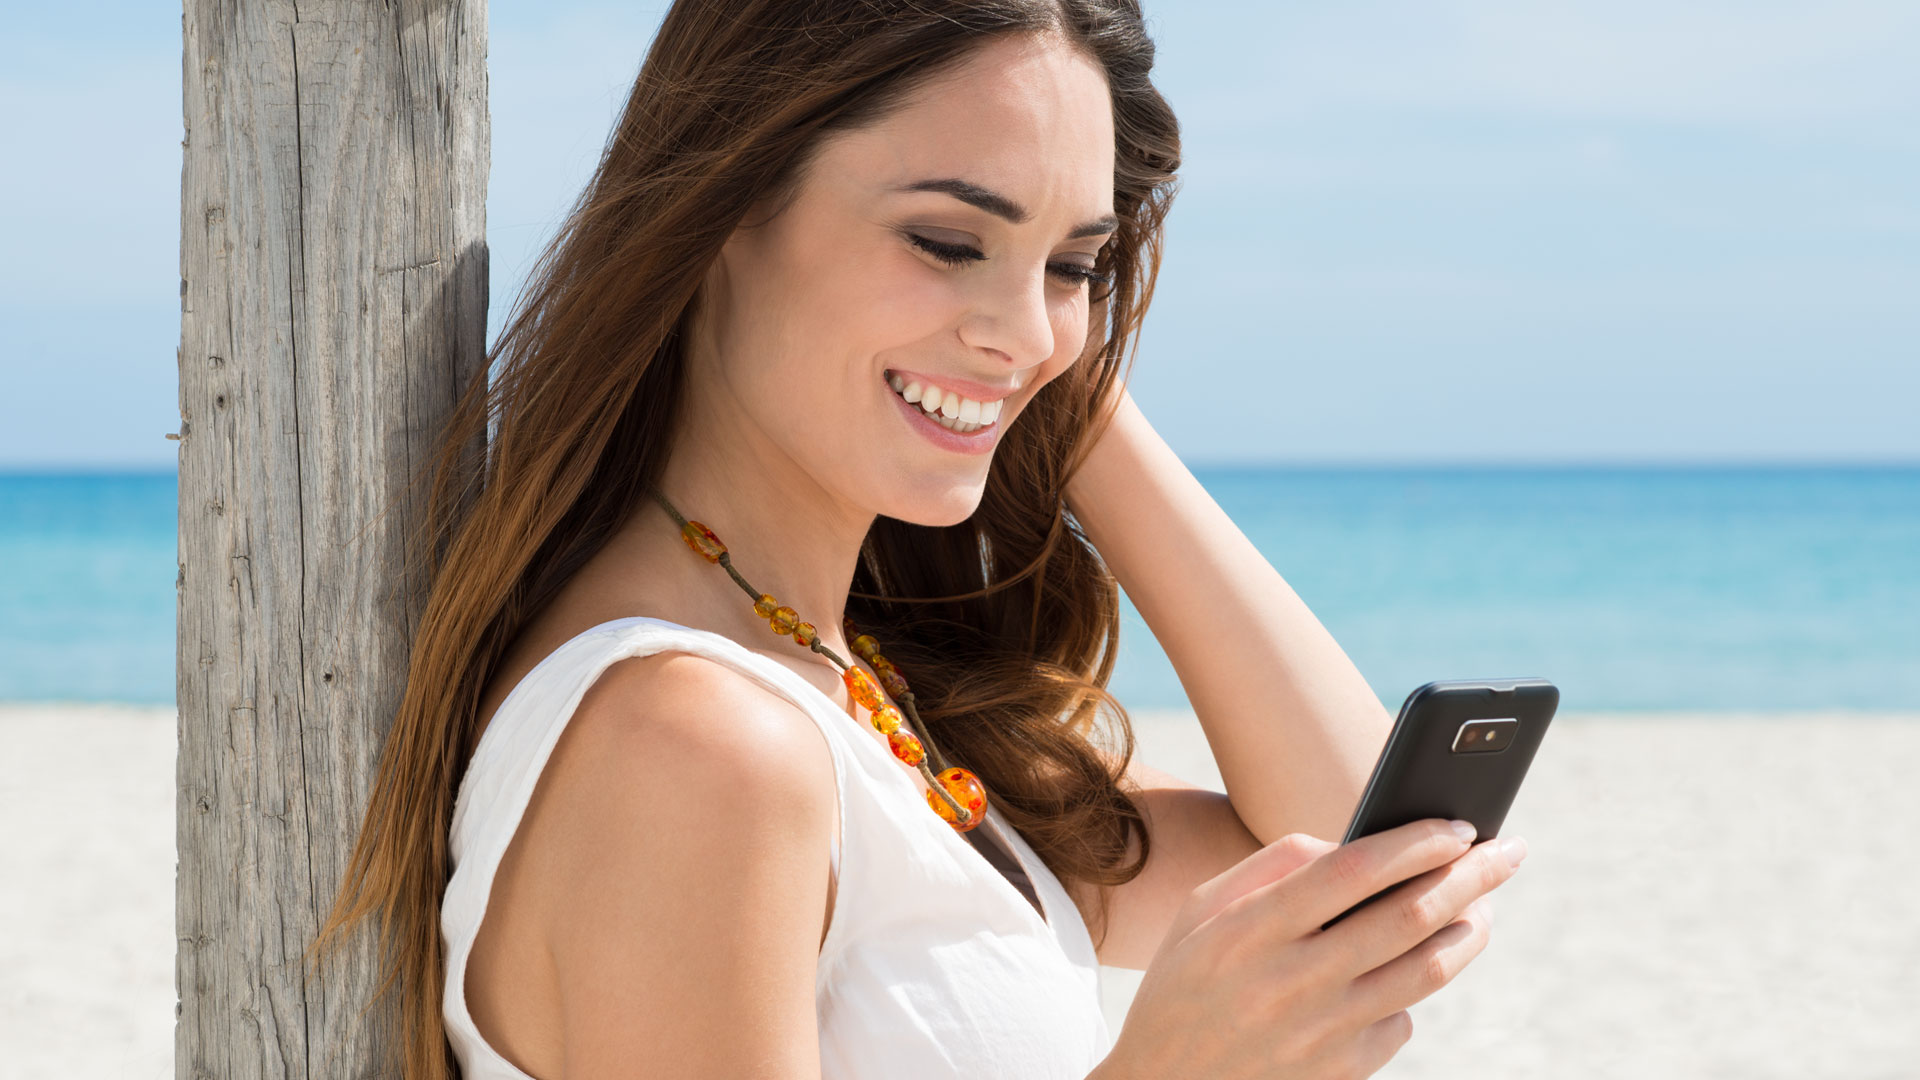 Slide - Woman smiling holding mobile phone